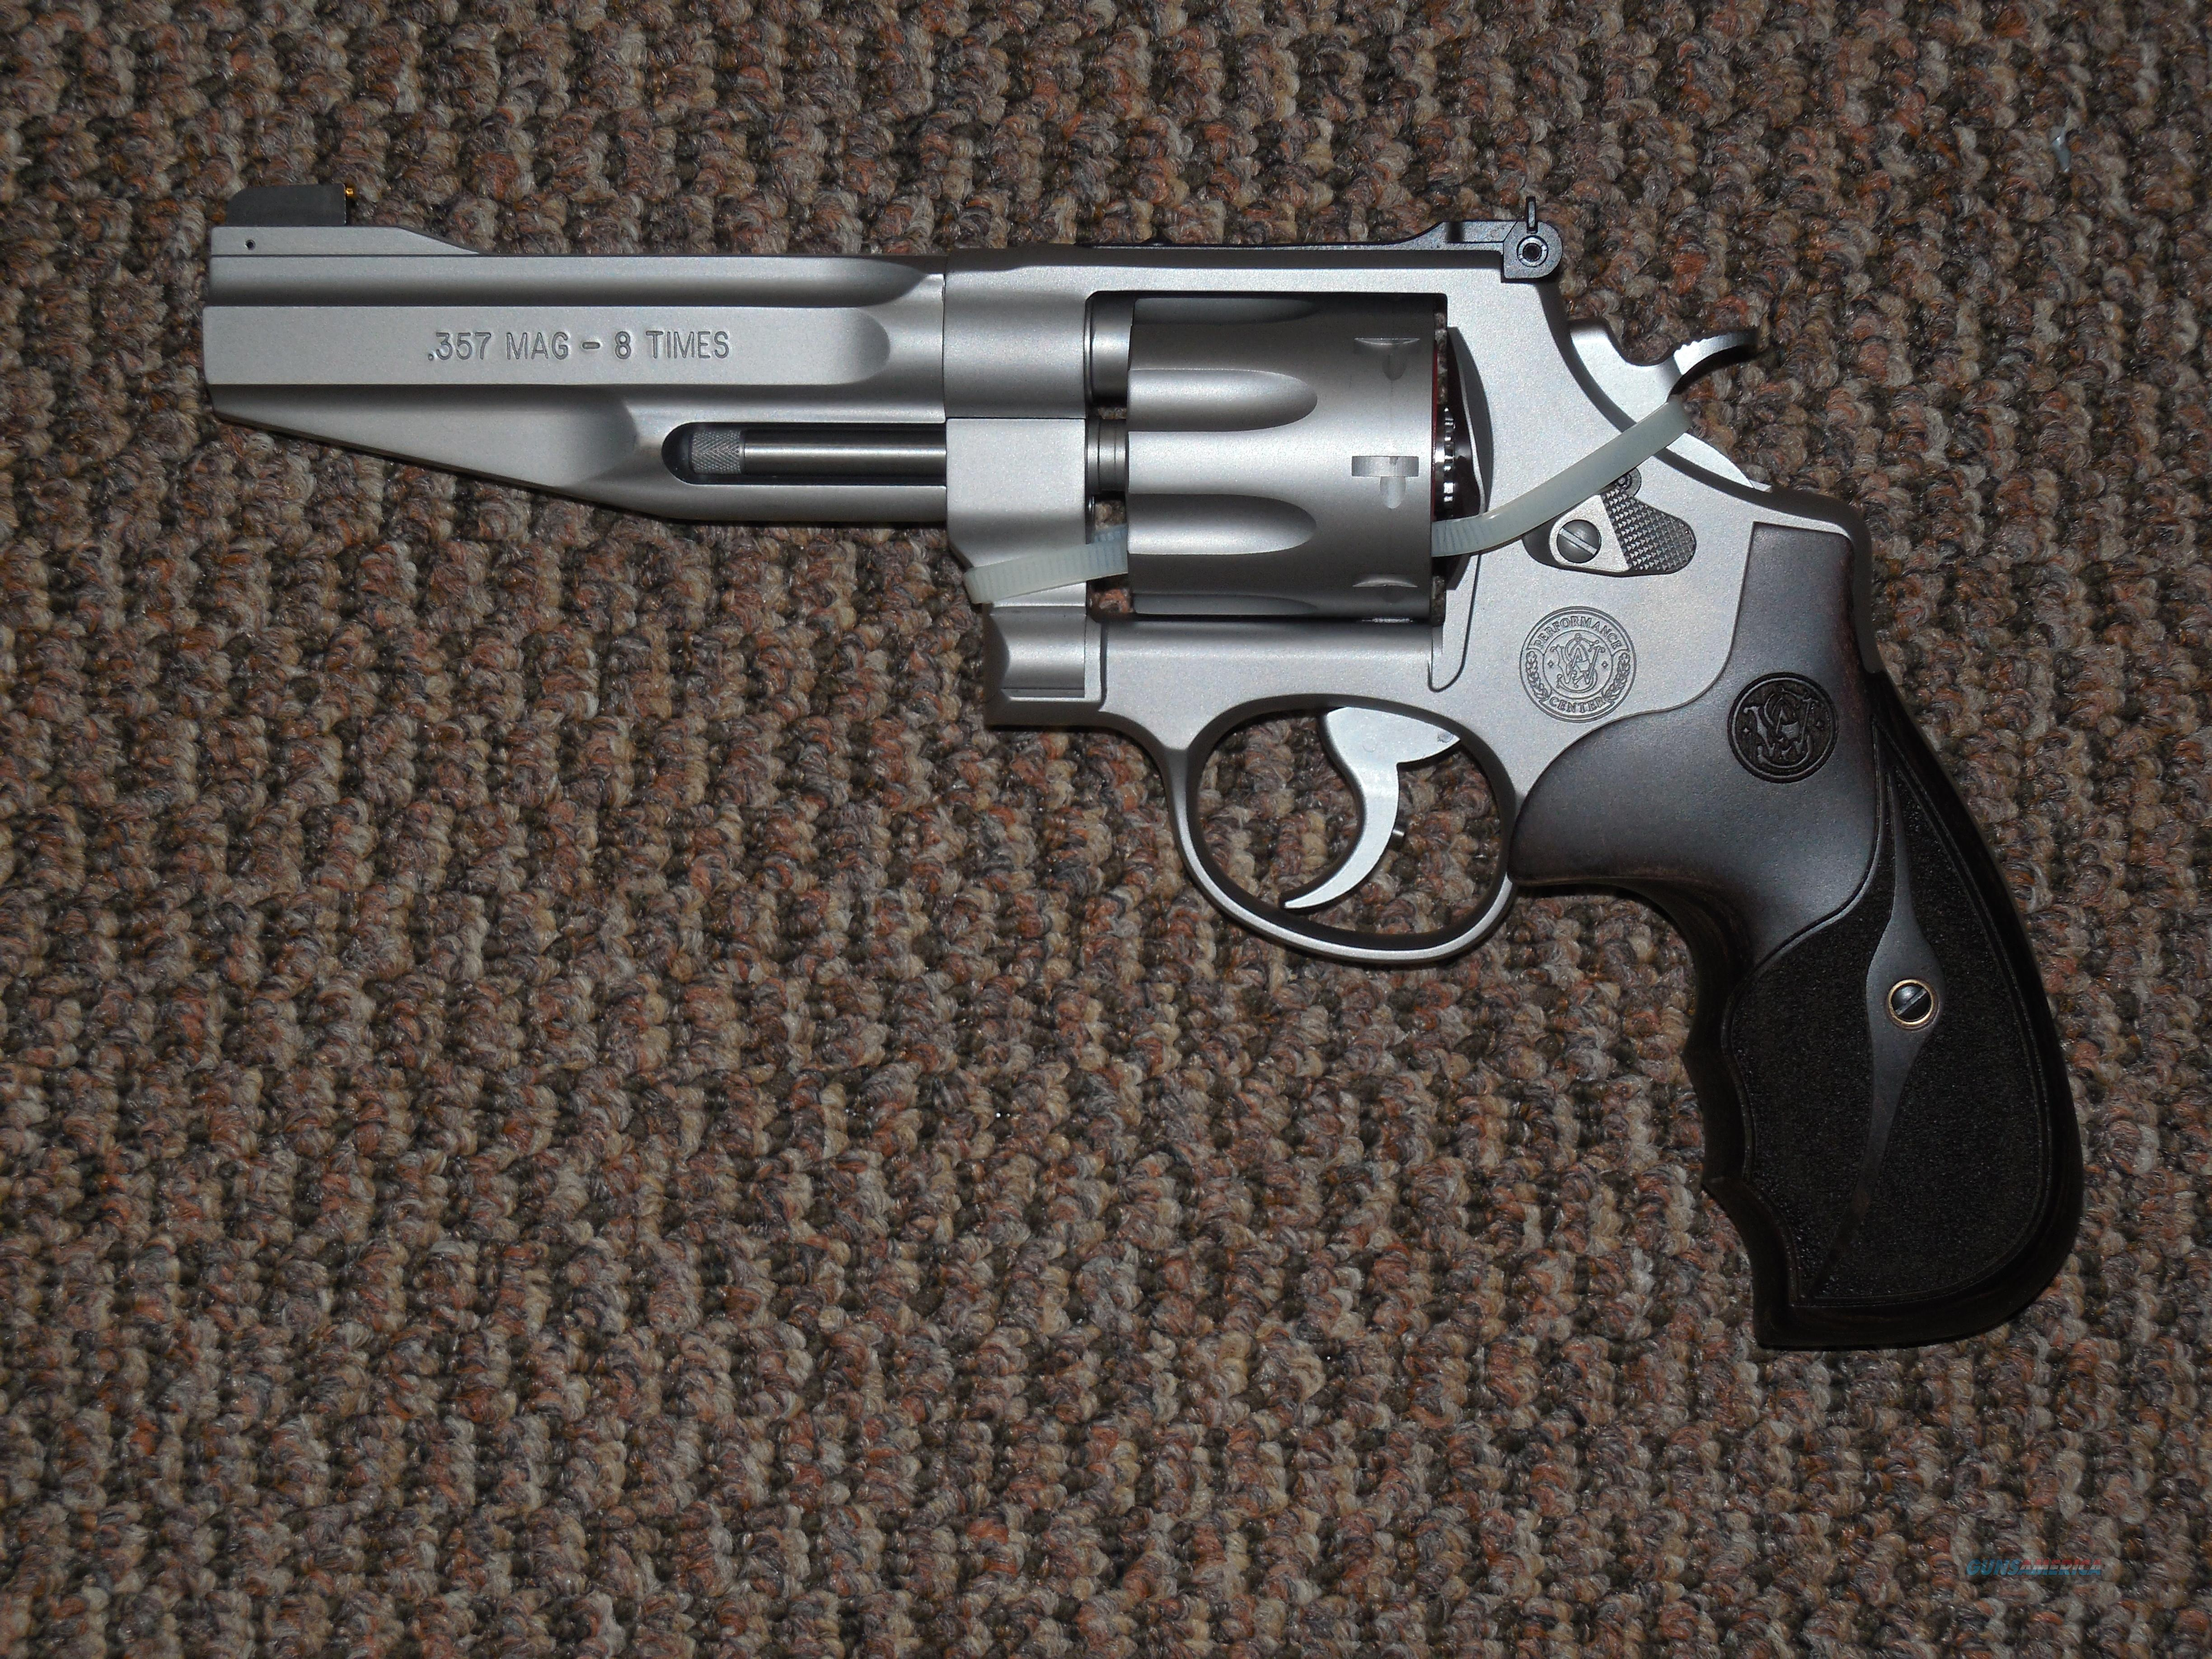 S&W MODEL 627 PERFORMANCE CENTER 8-SHOT .357 MAGNUM  Guns > Pistols > Smith & Wesson Revolvers > Performance Center